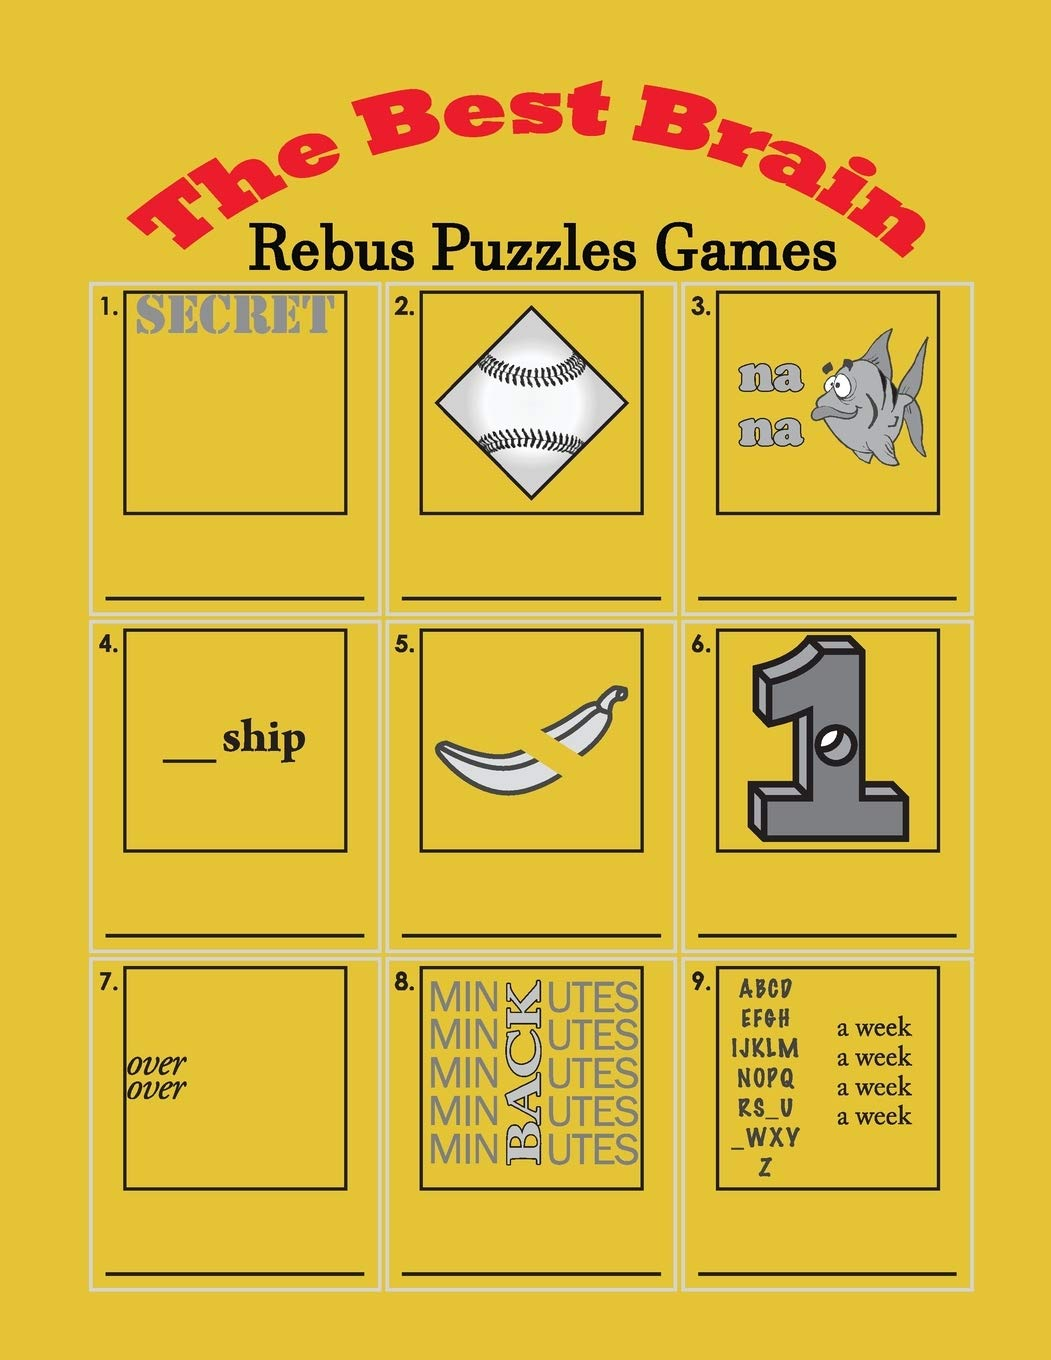 The Best Brain Rebus Puzzles Games Word Plexer Puzzle Teasers Frame Higueros Penny 9781074466756 Amazon Com Books